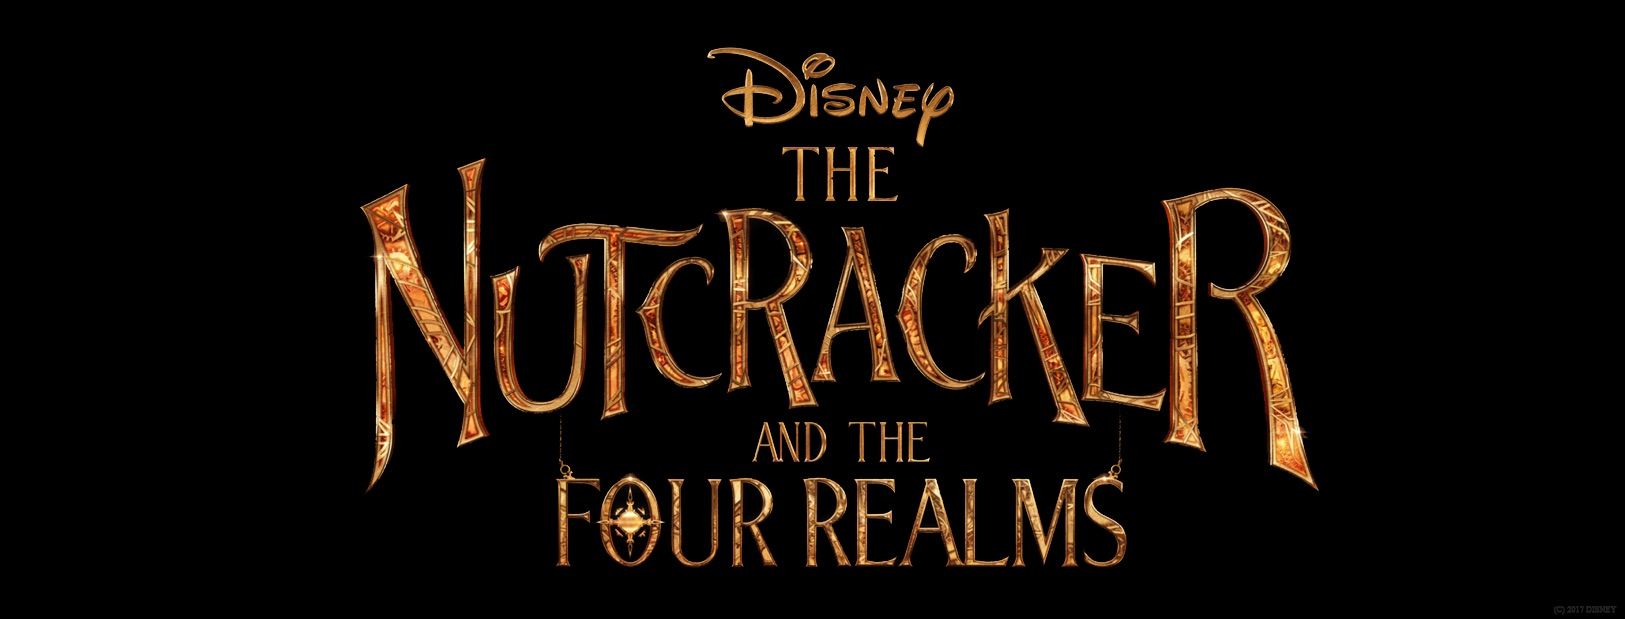 Resultado de imagen para The Nutcracker and the Four Realms